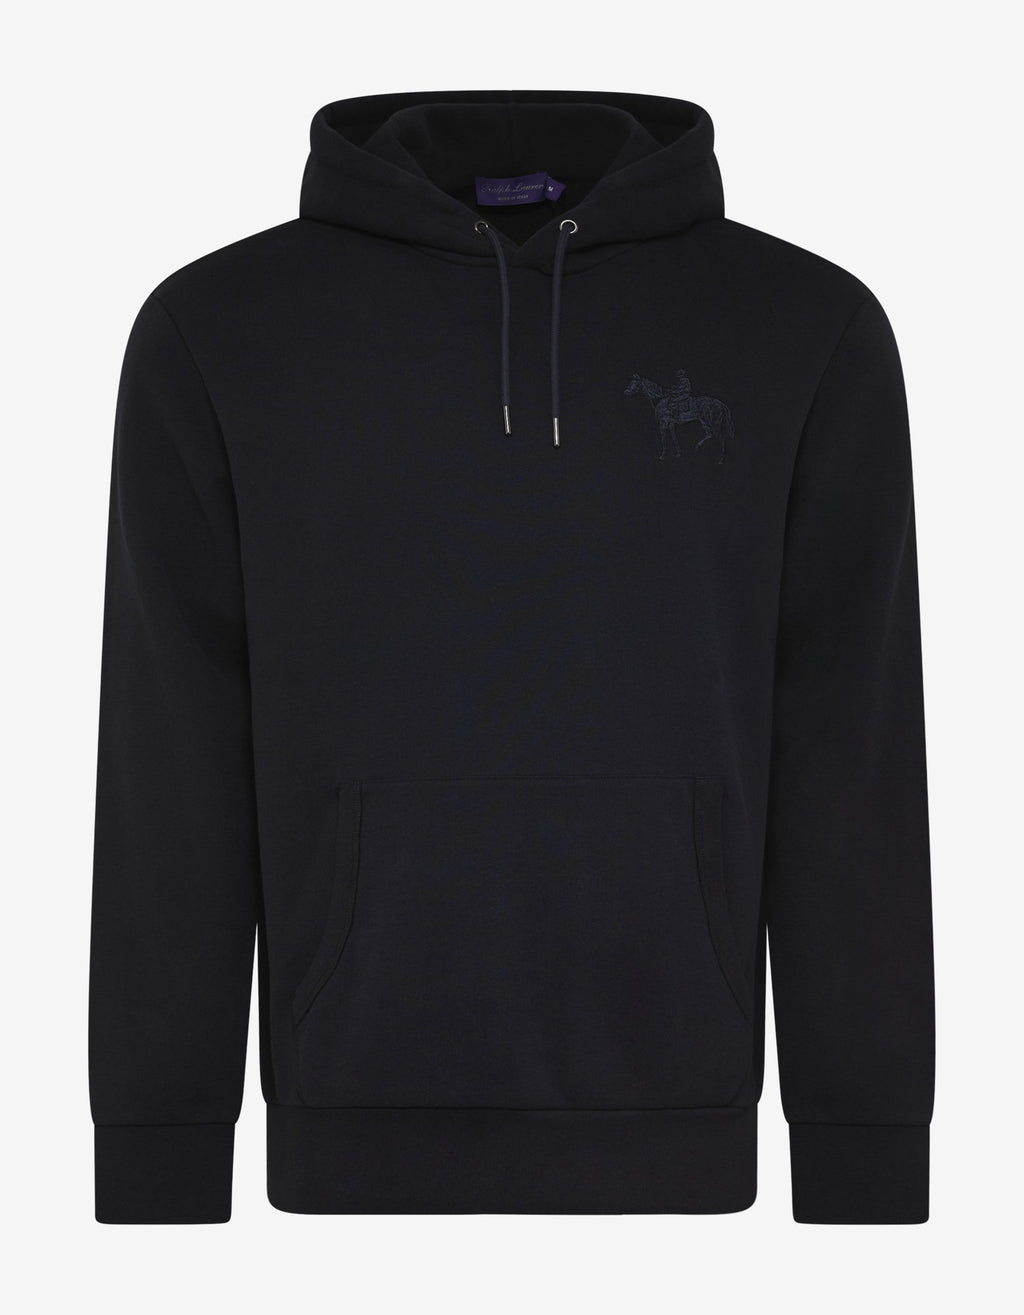 Navy Blue Pony Embroidery Hoodie -